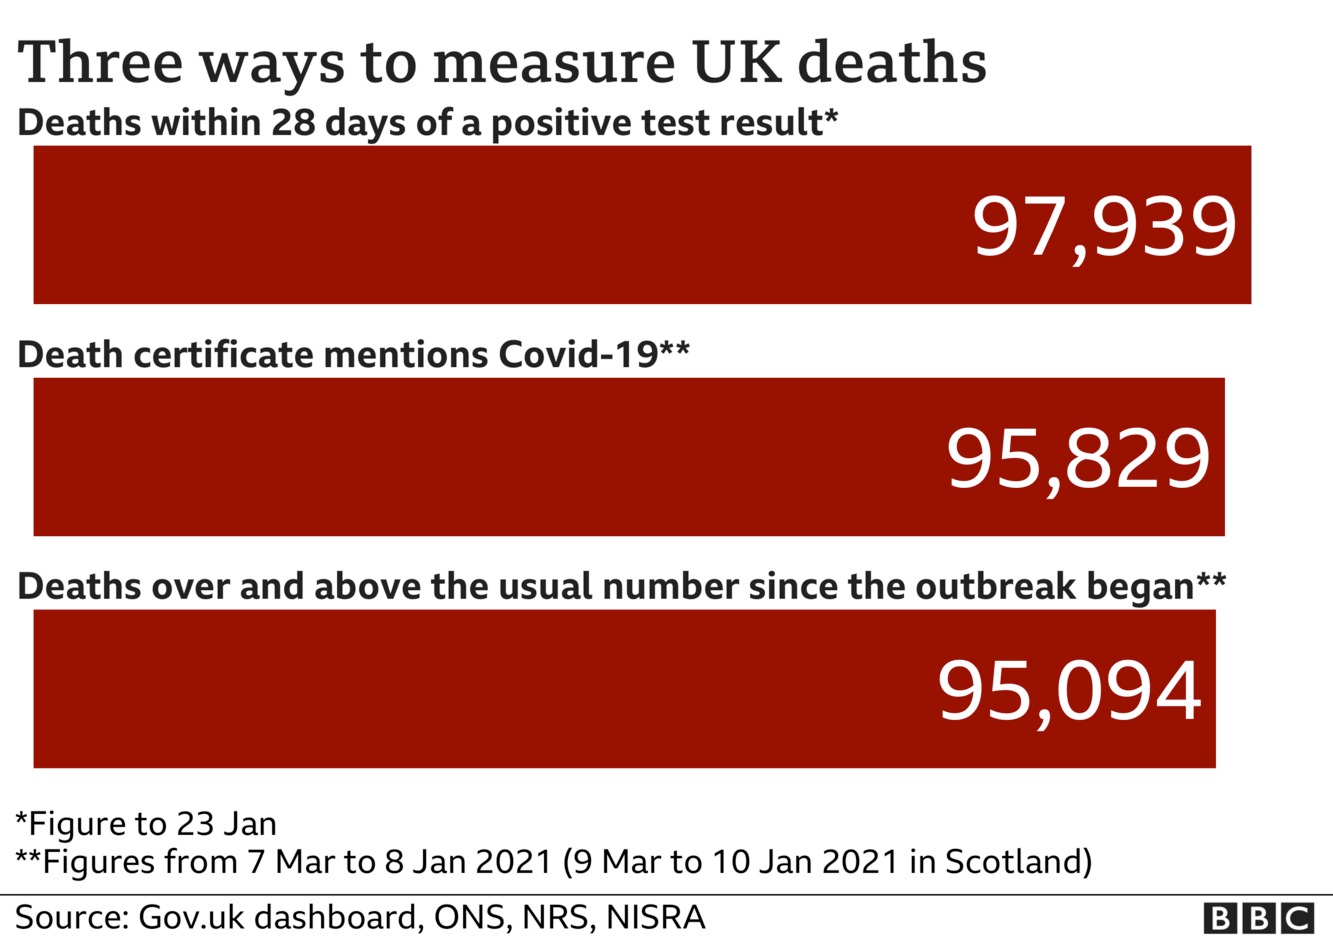 Chart showing three different totals for coronavirus deaths - the government measures all deaths within 28 days of a positive test, that total is 97,939. The ONS includes all deaths where coronavirus was mentioned on the death certificate, that total is 95,829 and the final total includes all deaths over and above the average for the time of year and that total is now 95,094